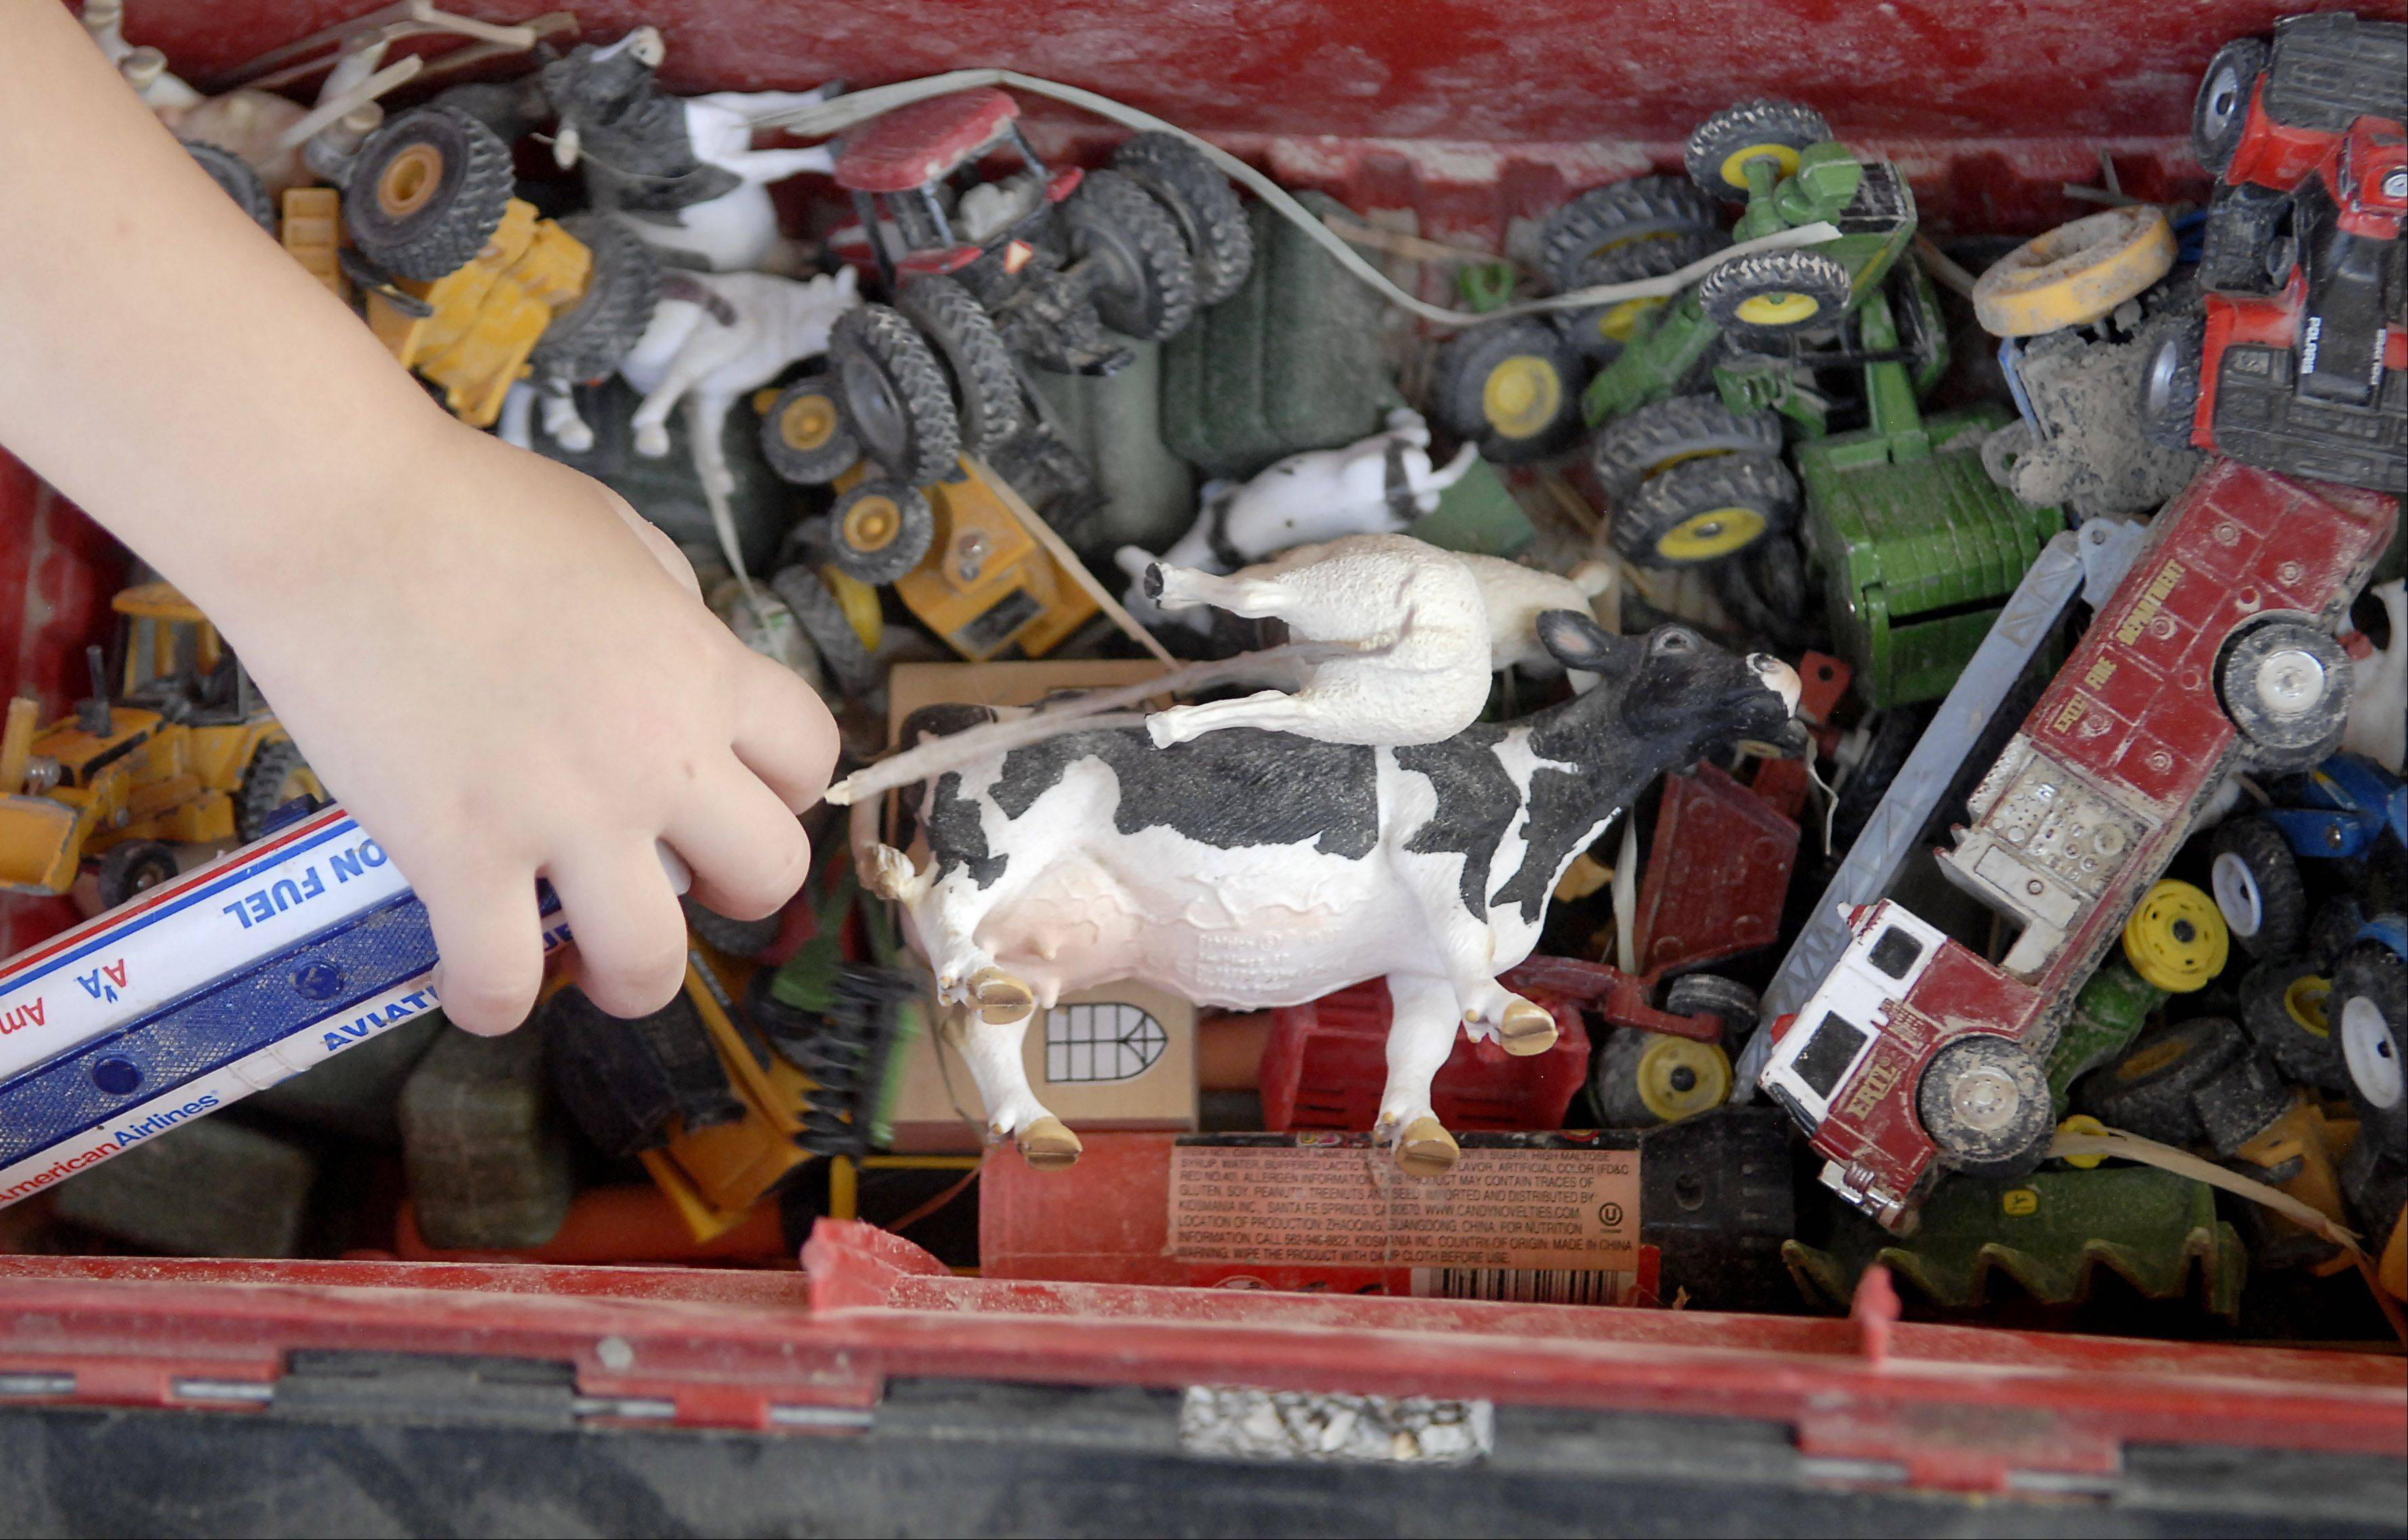 Isabel Stohlquist, 2, of Poplar Grove reaches into a toolbox full of farm machinery toys, a Holstein and a sheep, while family members show dairy cattle during second day of the Kane County Fair on Thursday, July 19.